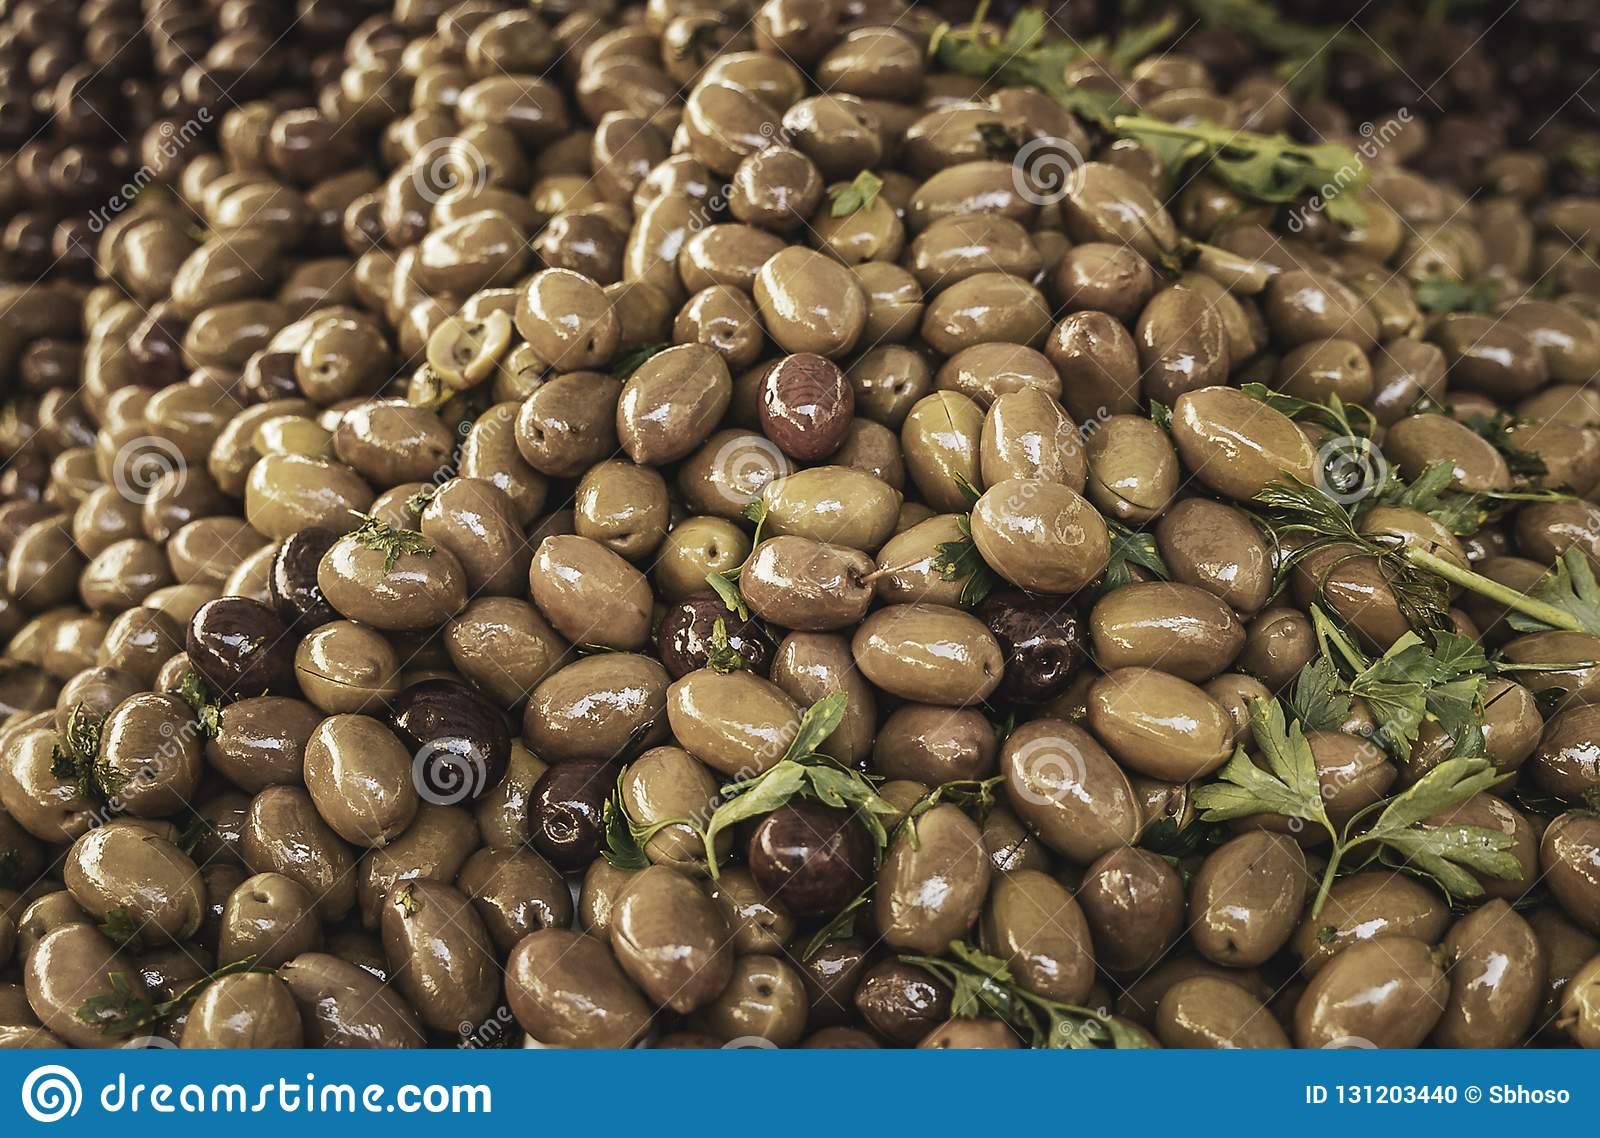 Fresh delicious green and black olives from a local farmers market in Sicily